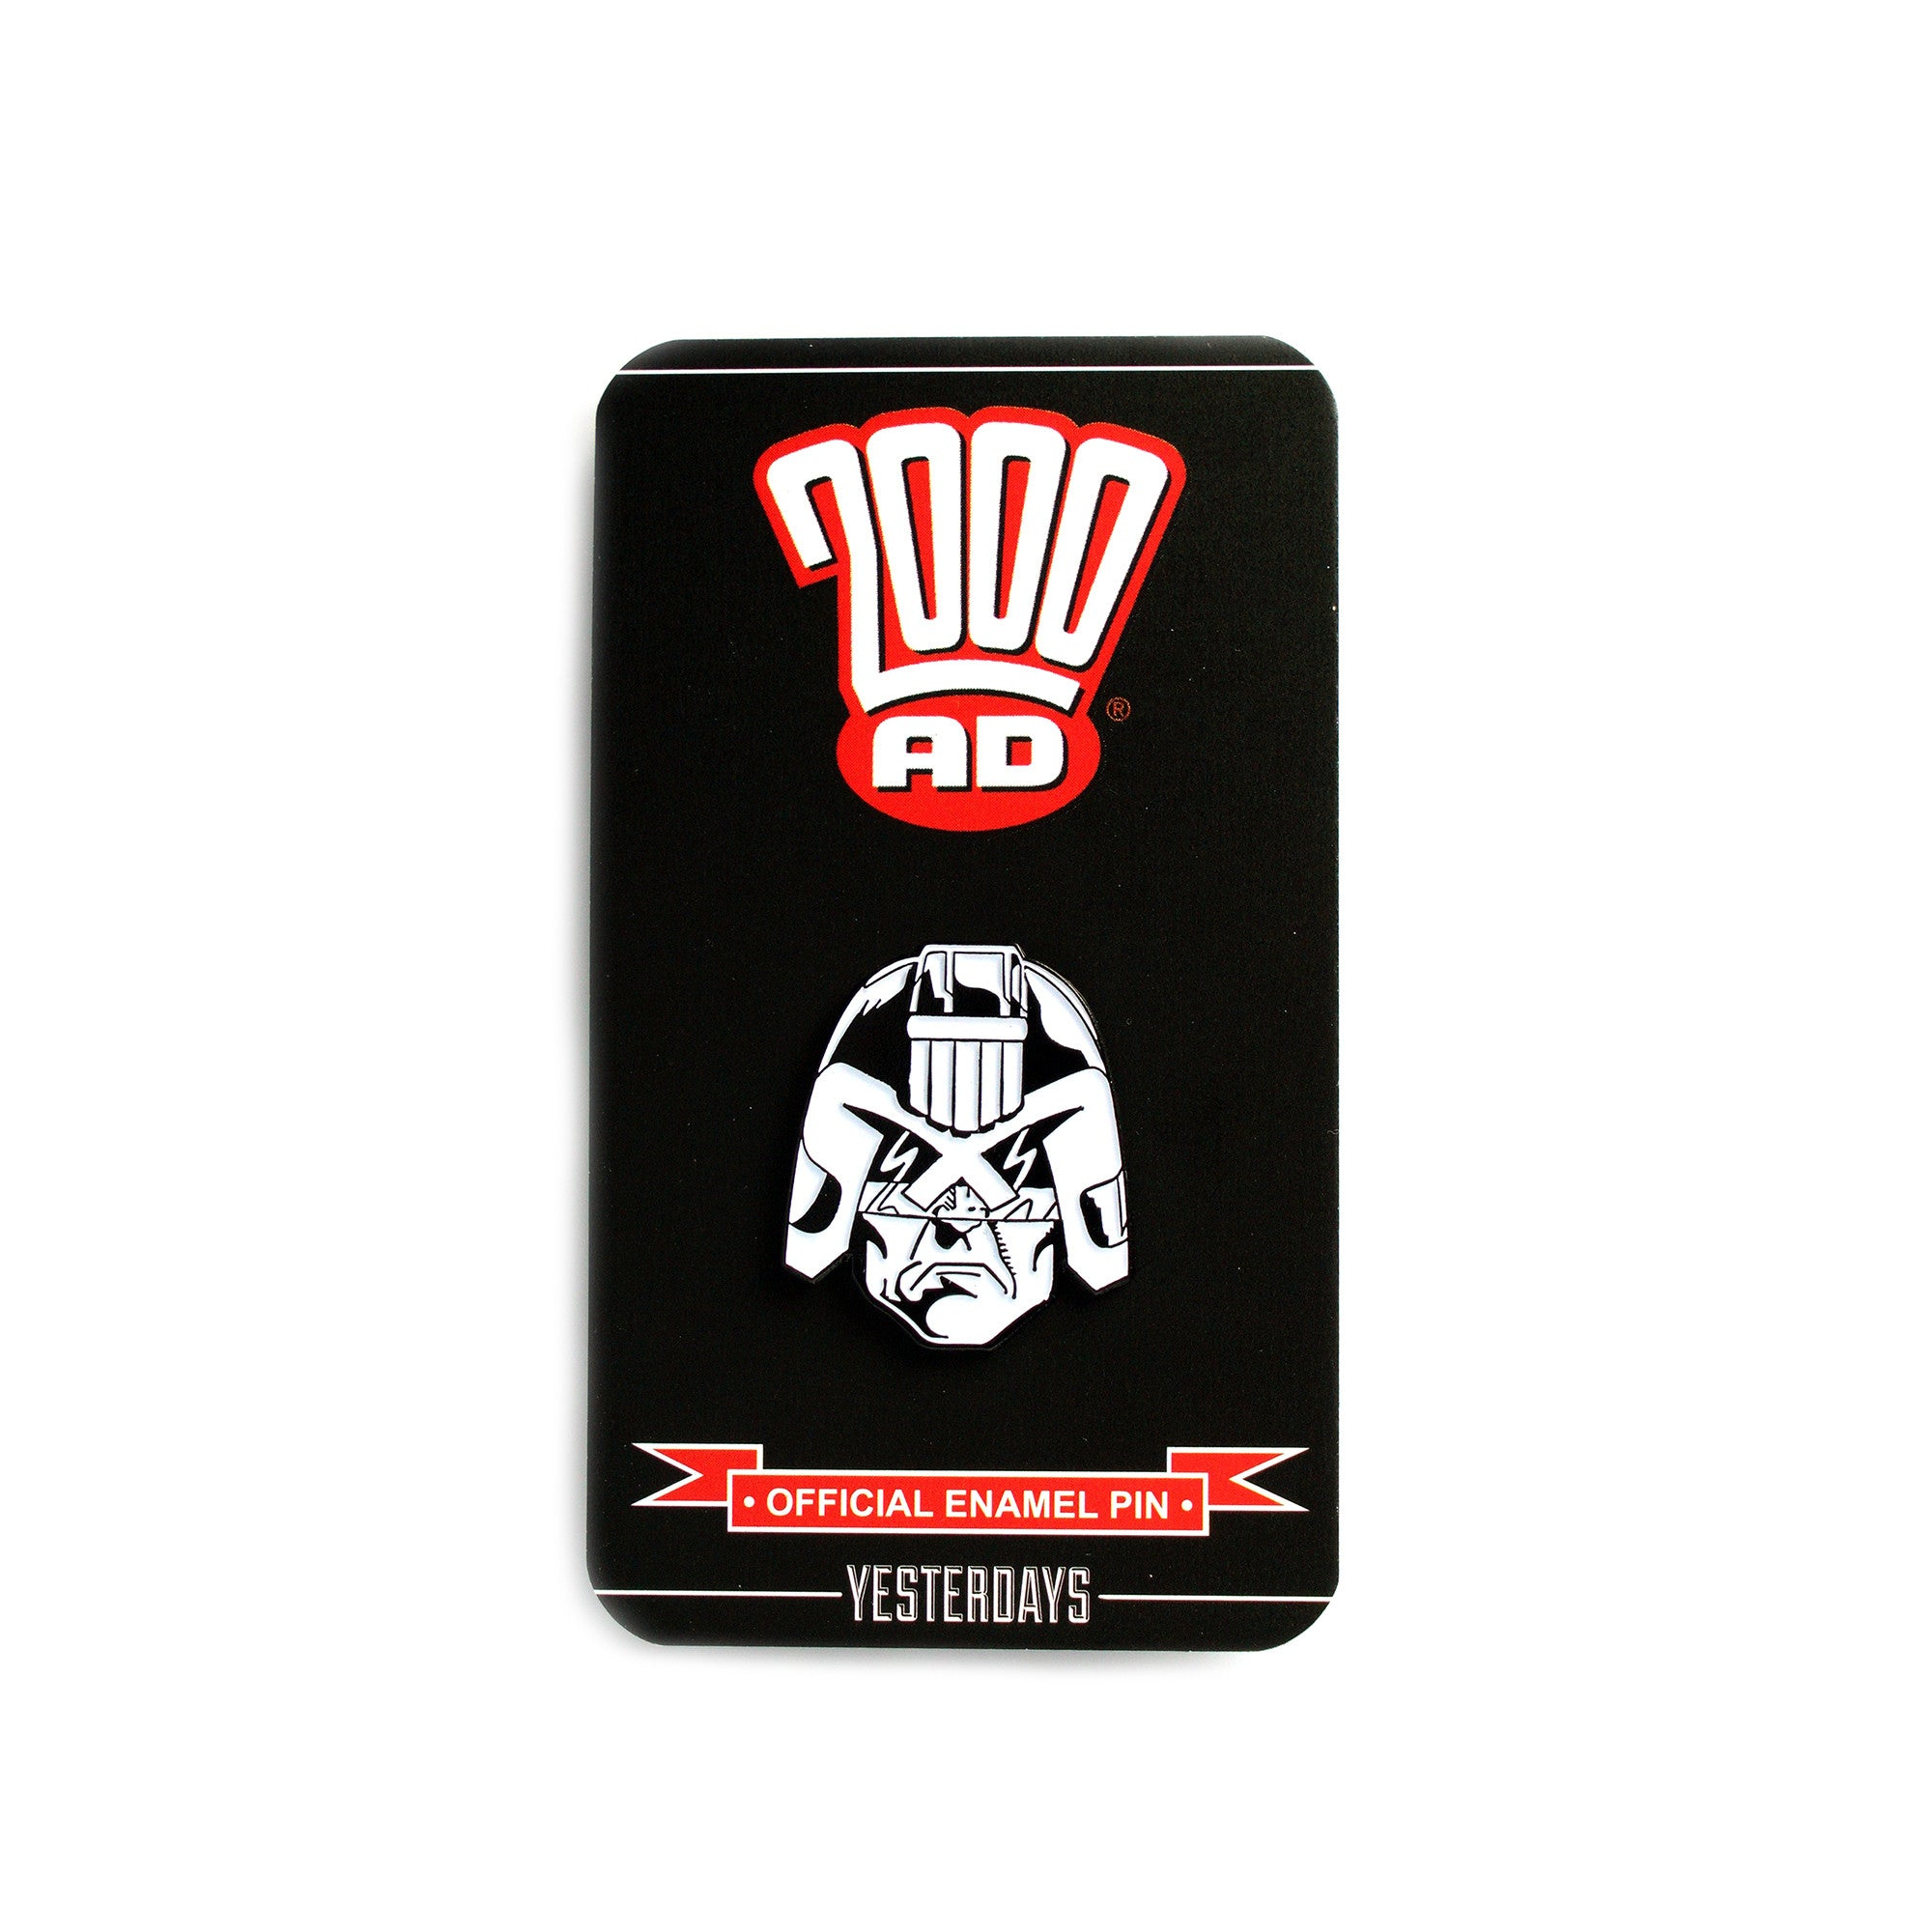 2000 AD Judge Dredd Pin (Inked Edition)